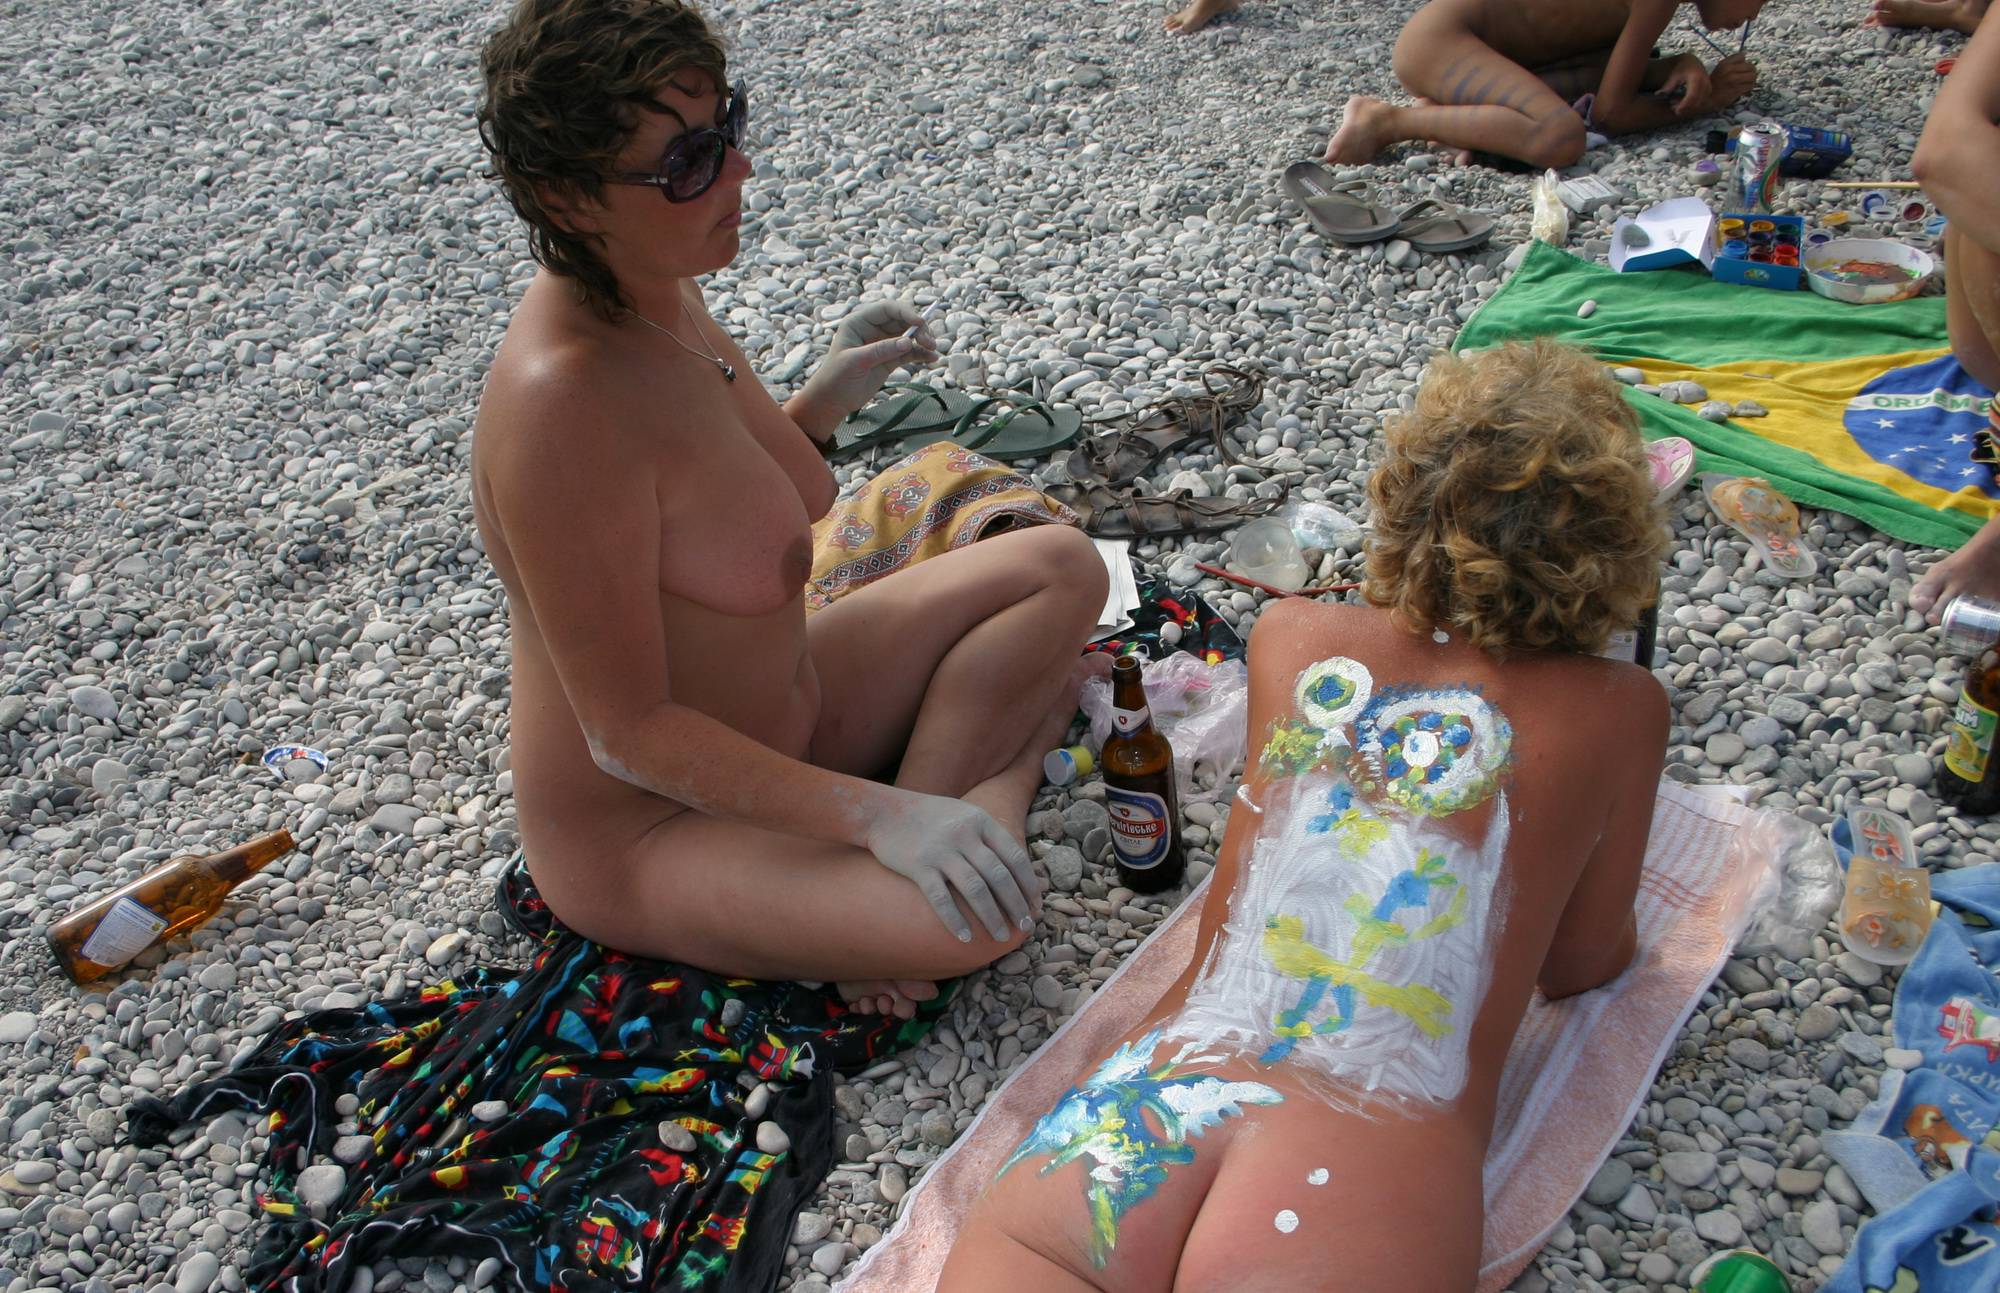 Nudist Pictures Nude Family Body Painting - 2